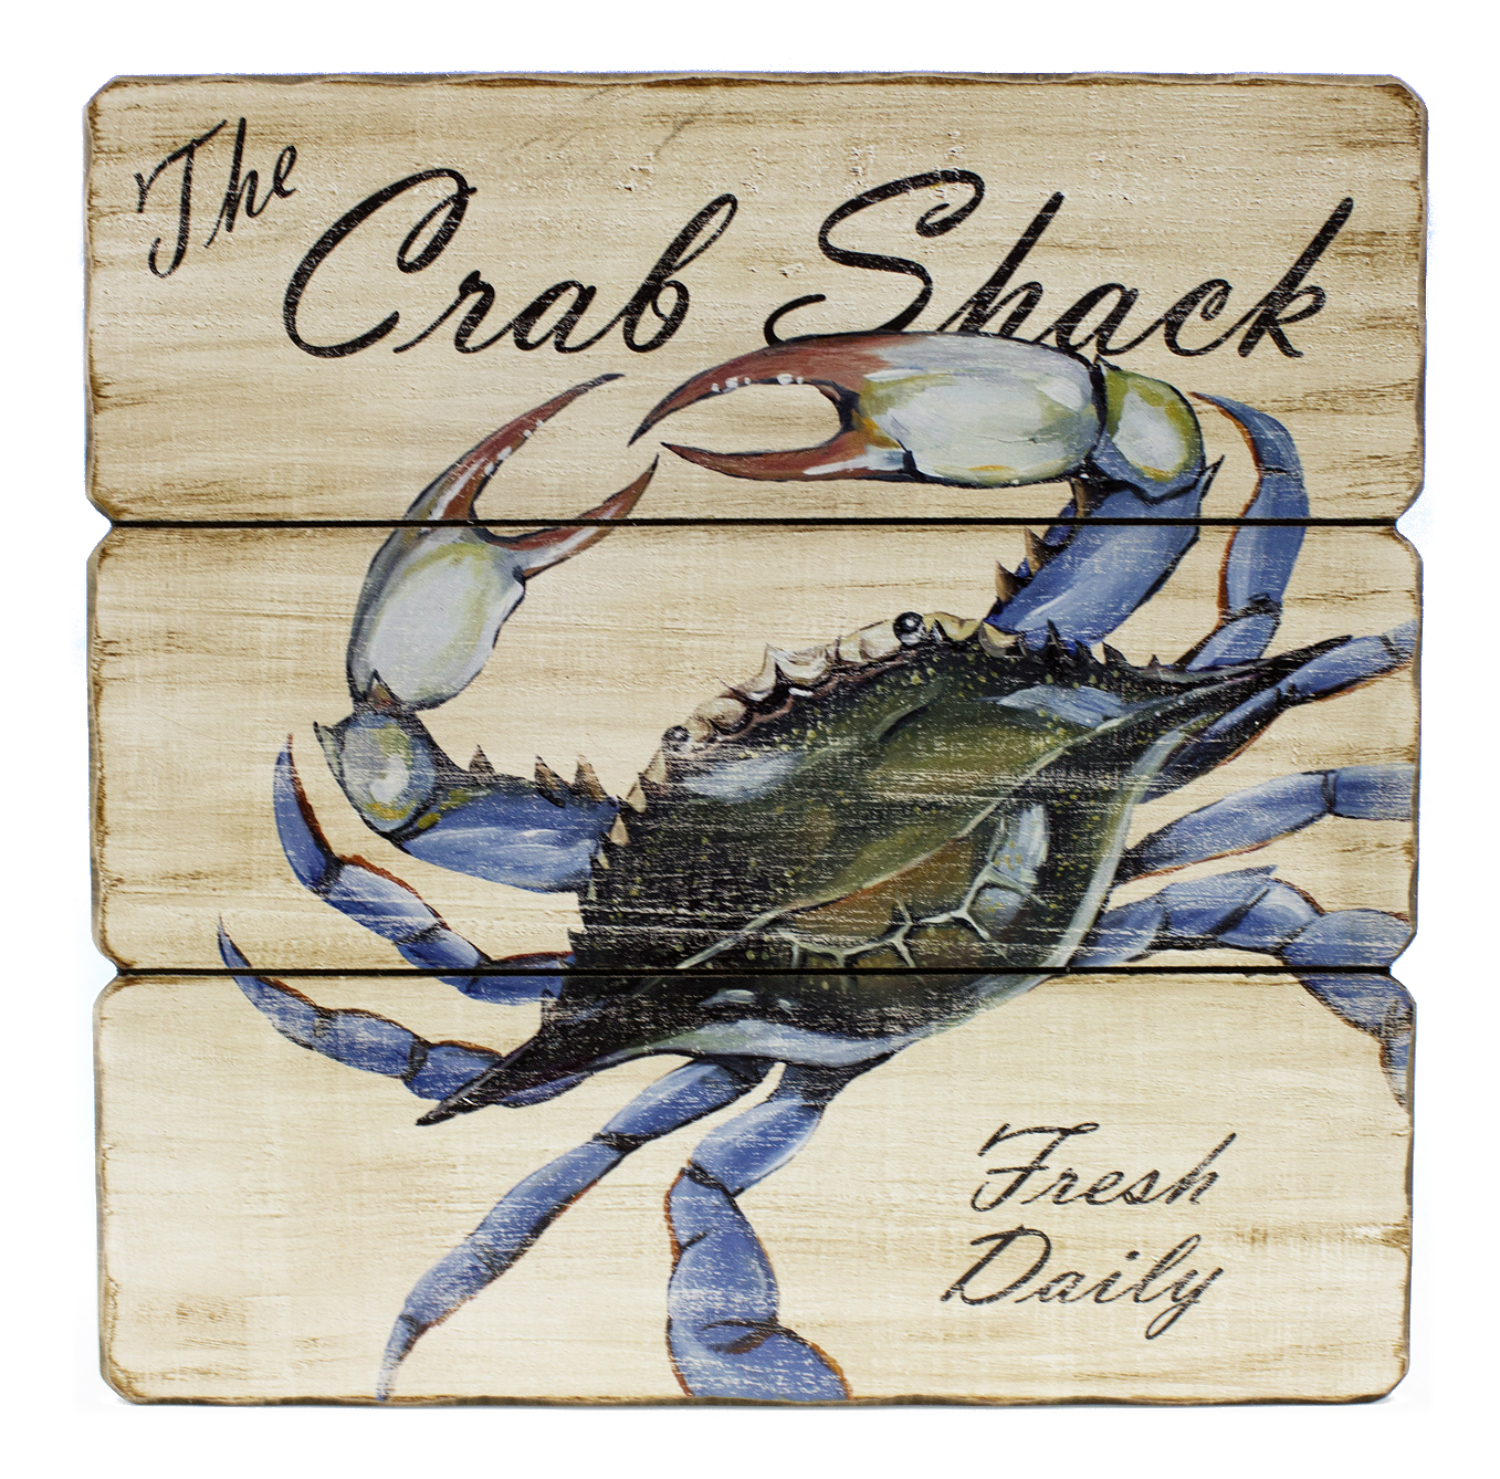 Blue Crab Shack Fresh Daily Wood Wall Sign 11.5 inches